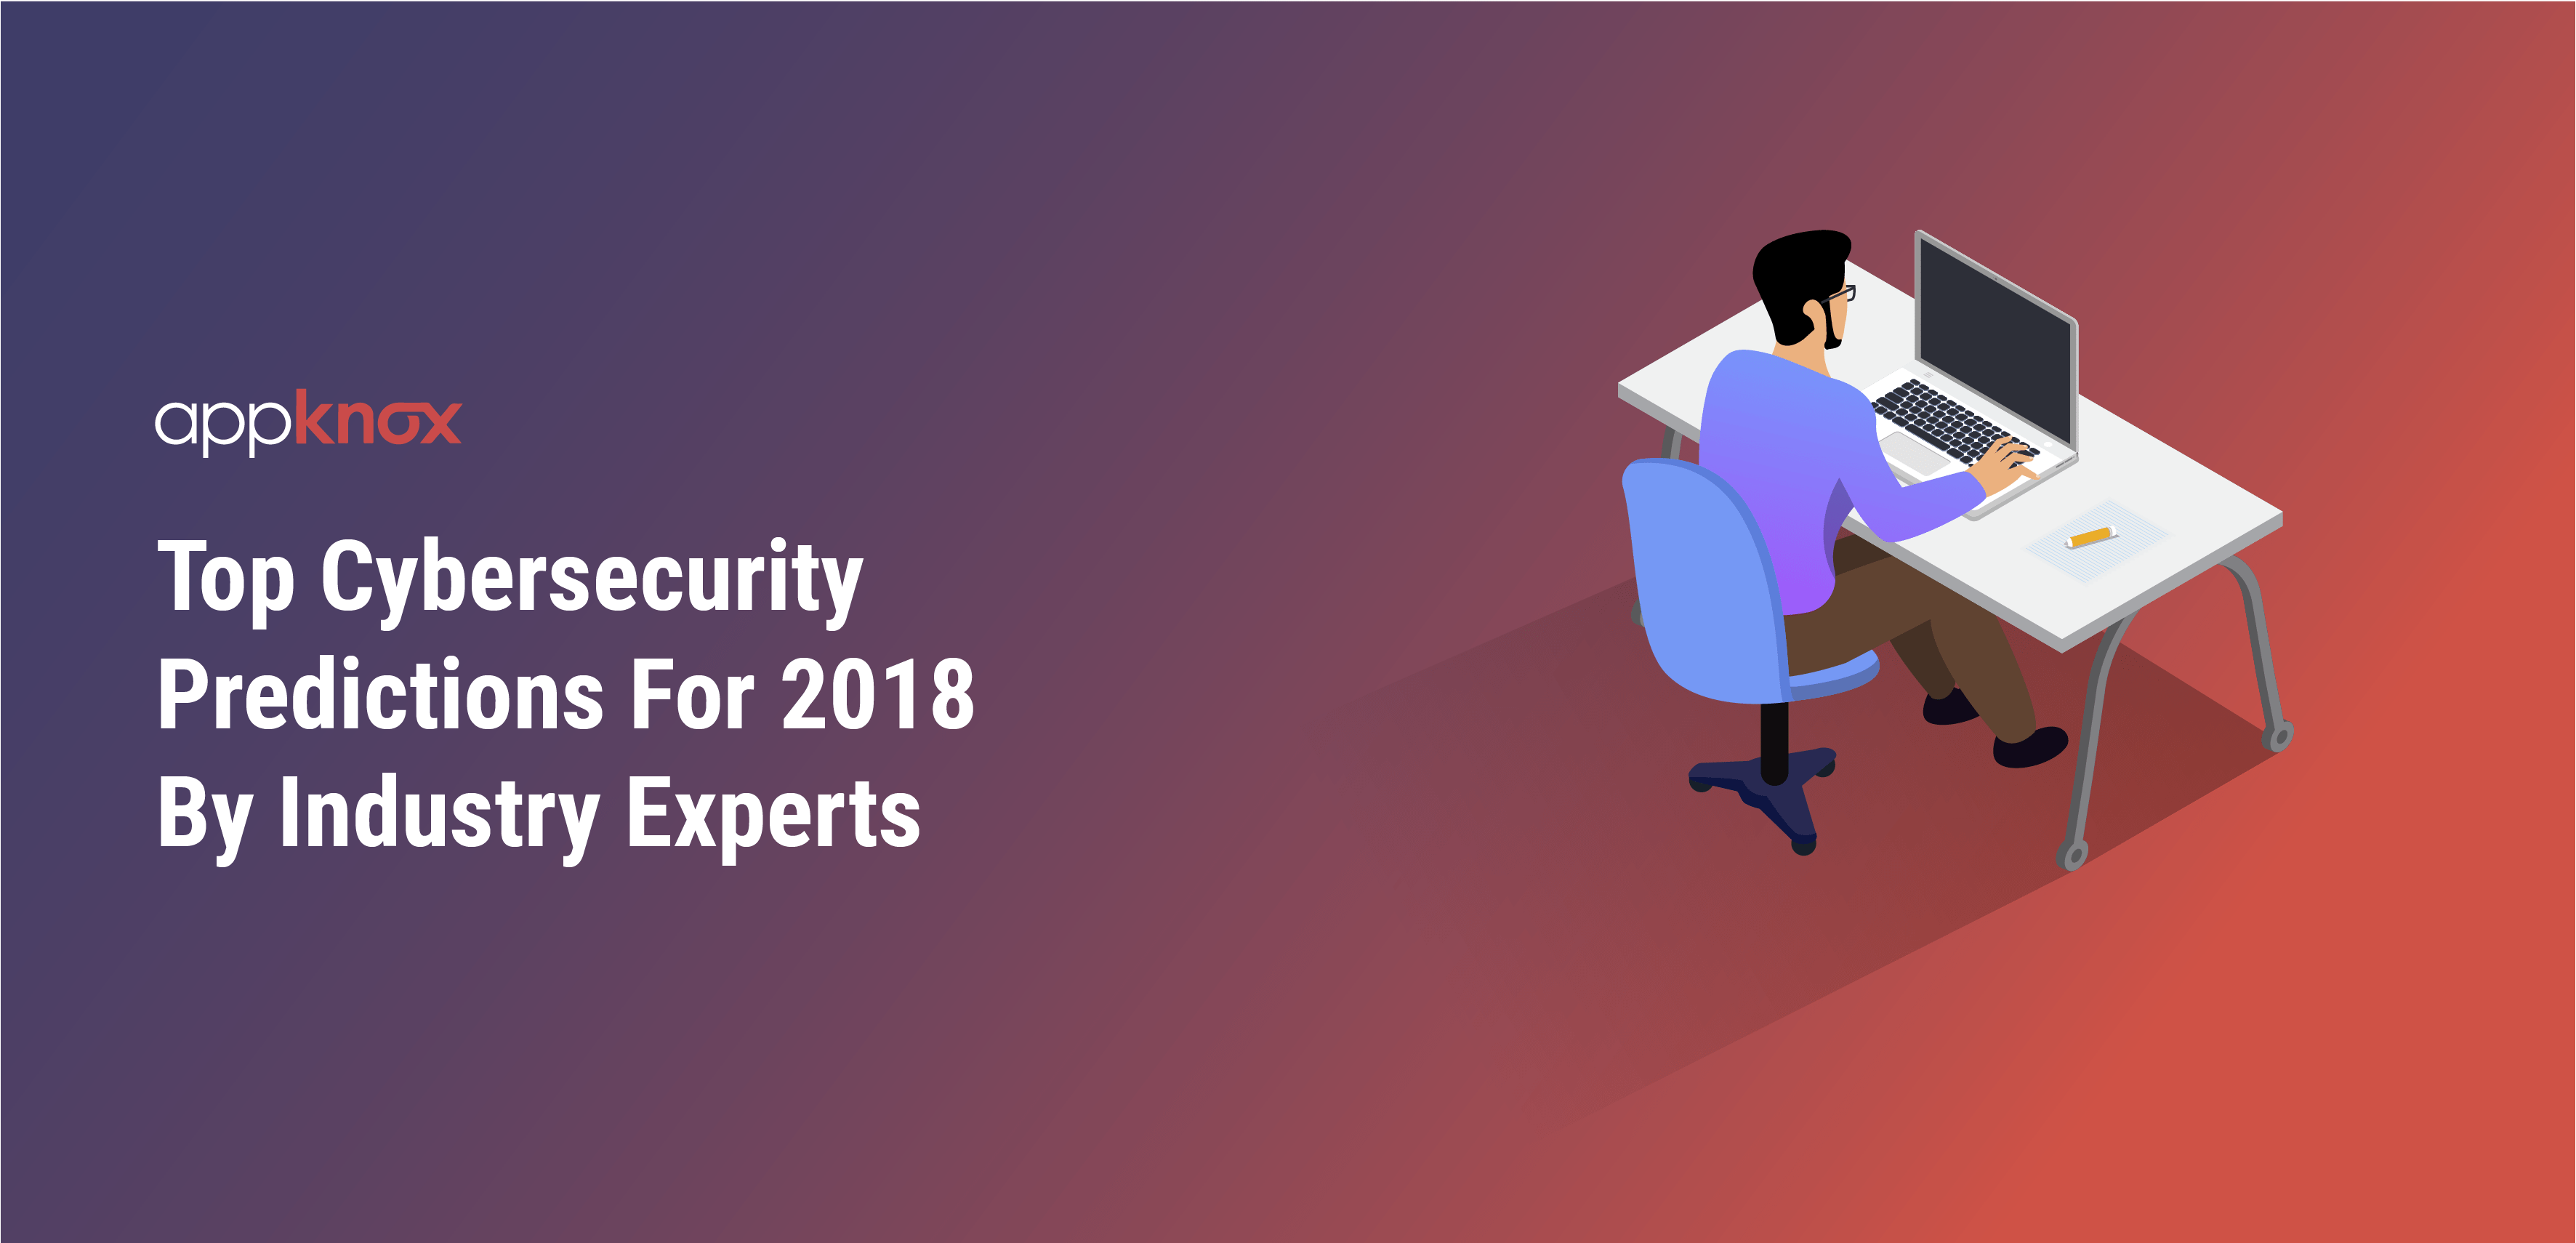 Top Cybersecurity Predictions For 2018 By Industry Experts